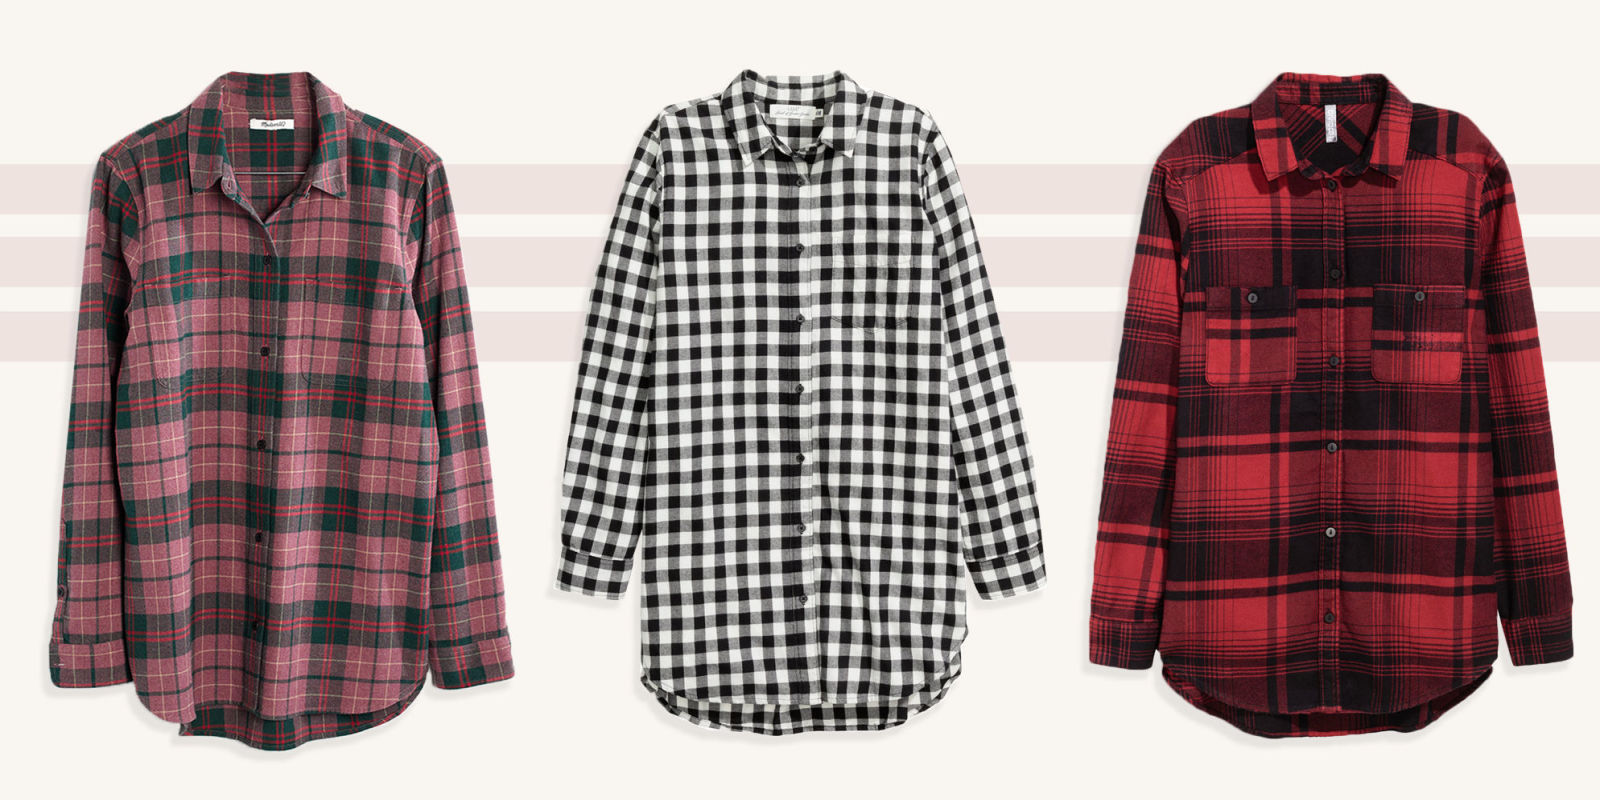 Womens Tartan Plaid Flannel Shirts, Roll up Sleeve Casual Boyfriend Button Down Gingham Checkered Shirt. from $ 6 99 Prime. out of 5 stars Sorrica. Women's Casual Loose Long Sleeve Plaid Flannel Blouse Shirt $ 19 99 Prime. out of 5 stars Benibos. Women's Check Flannel Plaid Shirt.